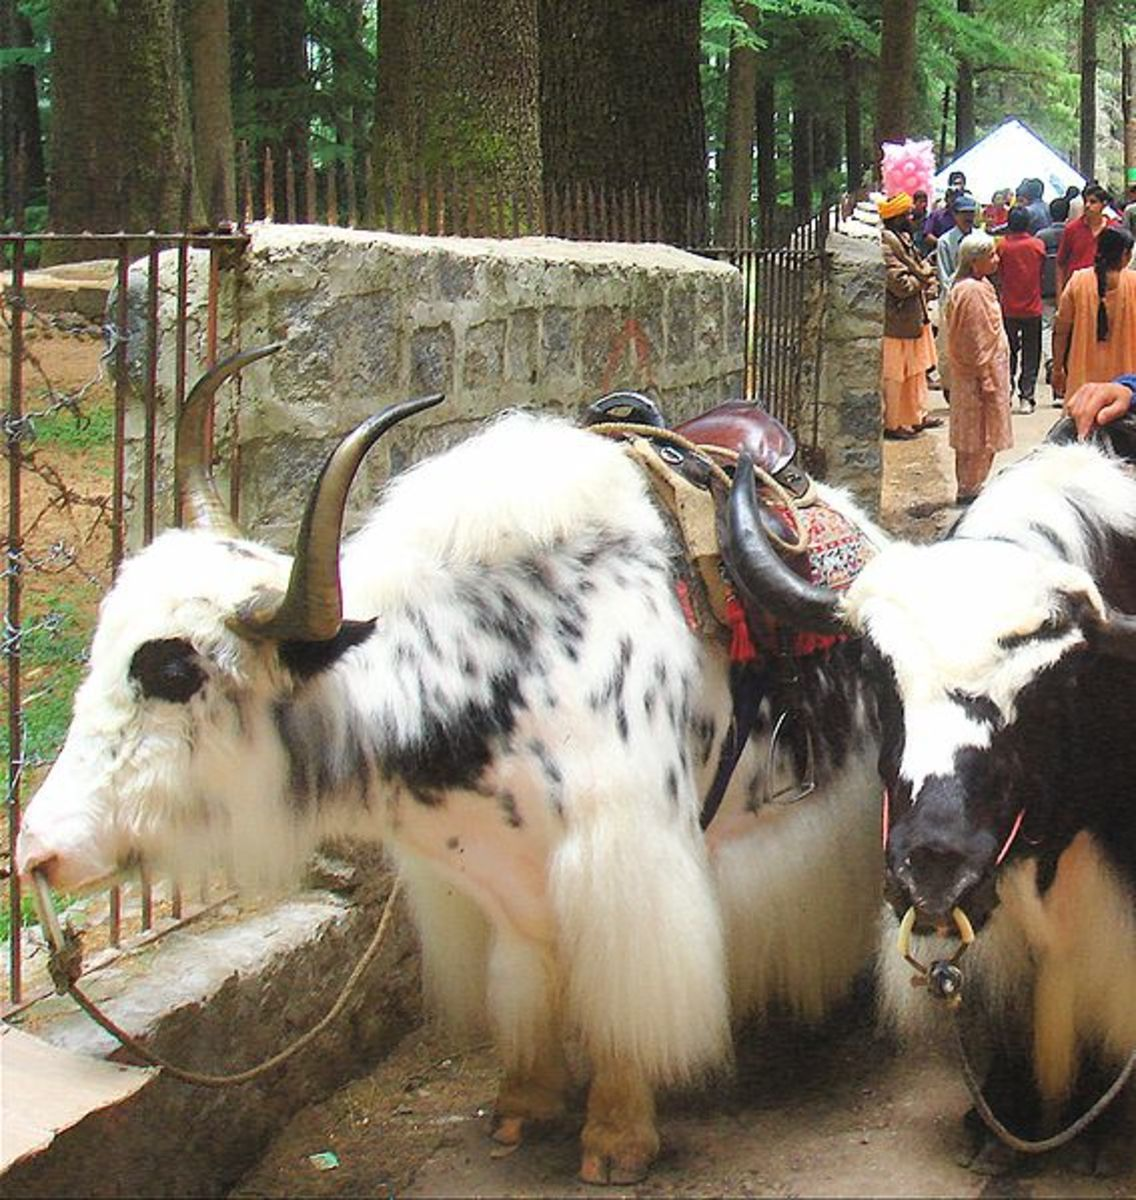 Yaks in Manali